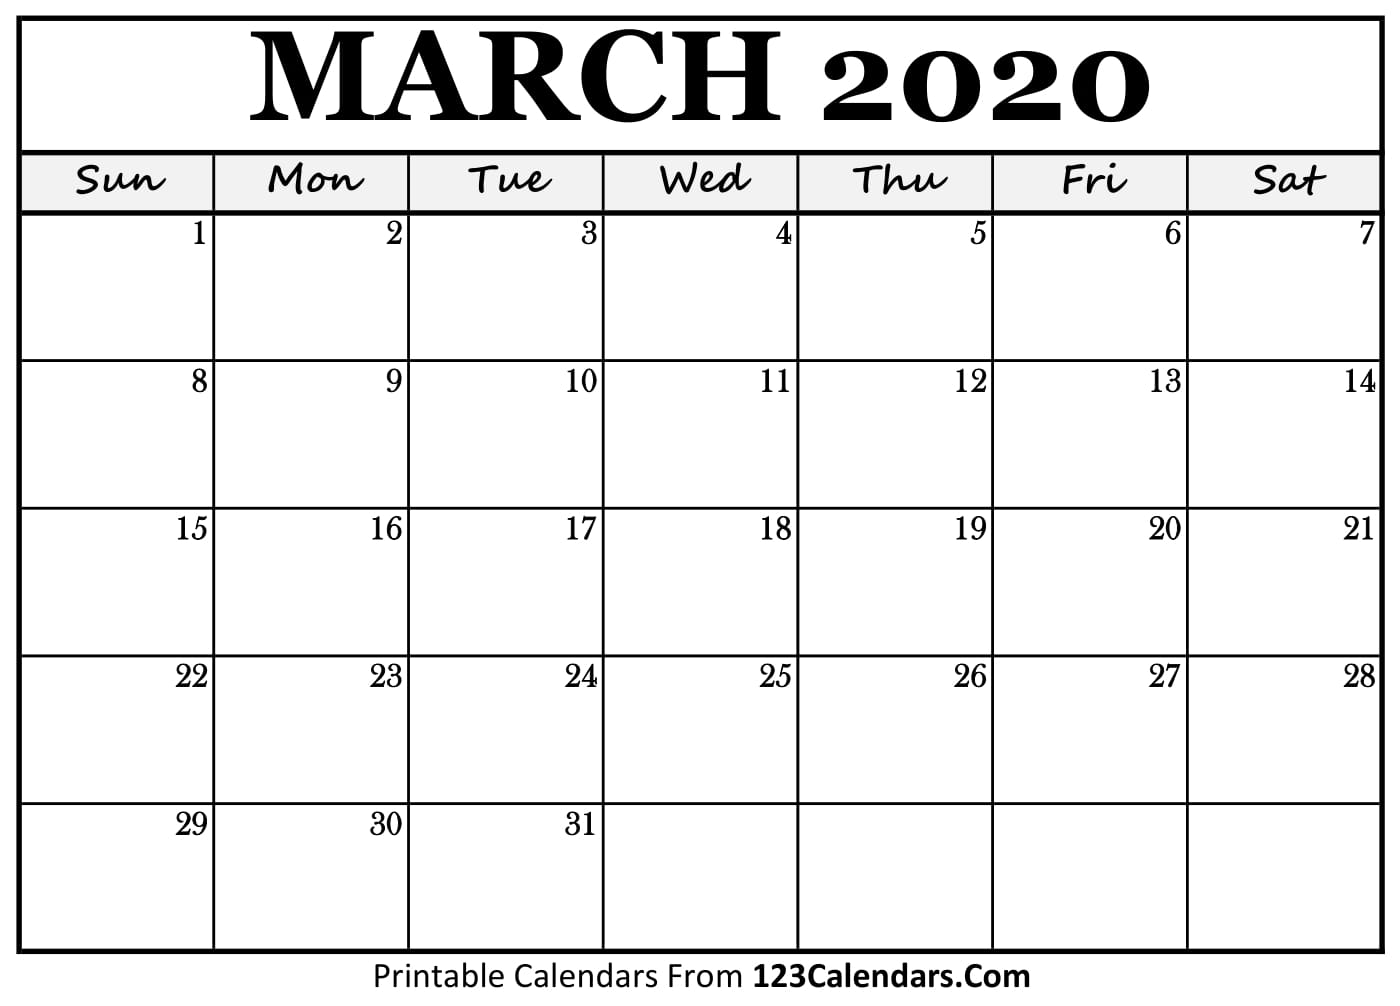 photograph about Calendar March Printable named March 2020 Printable Calendar